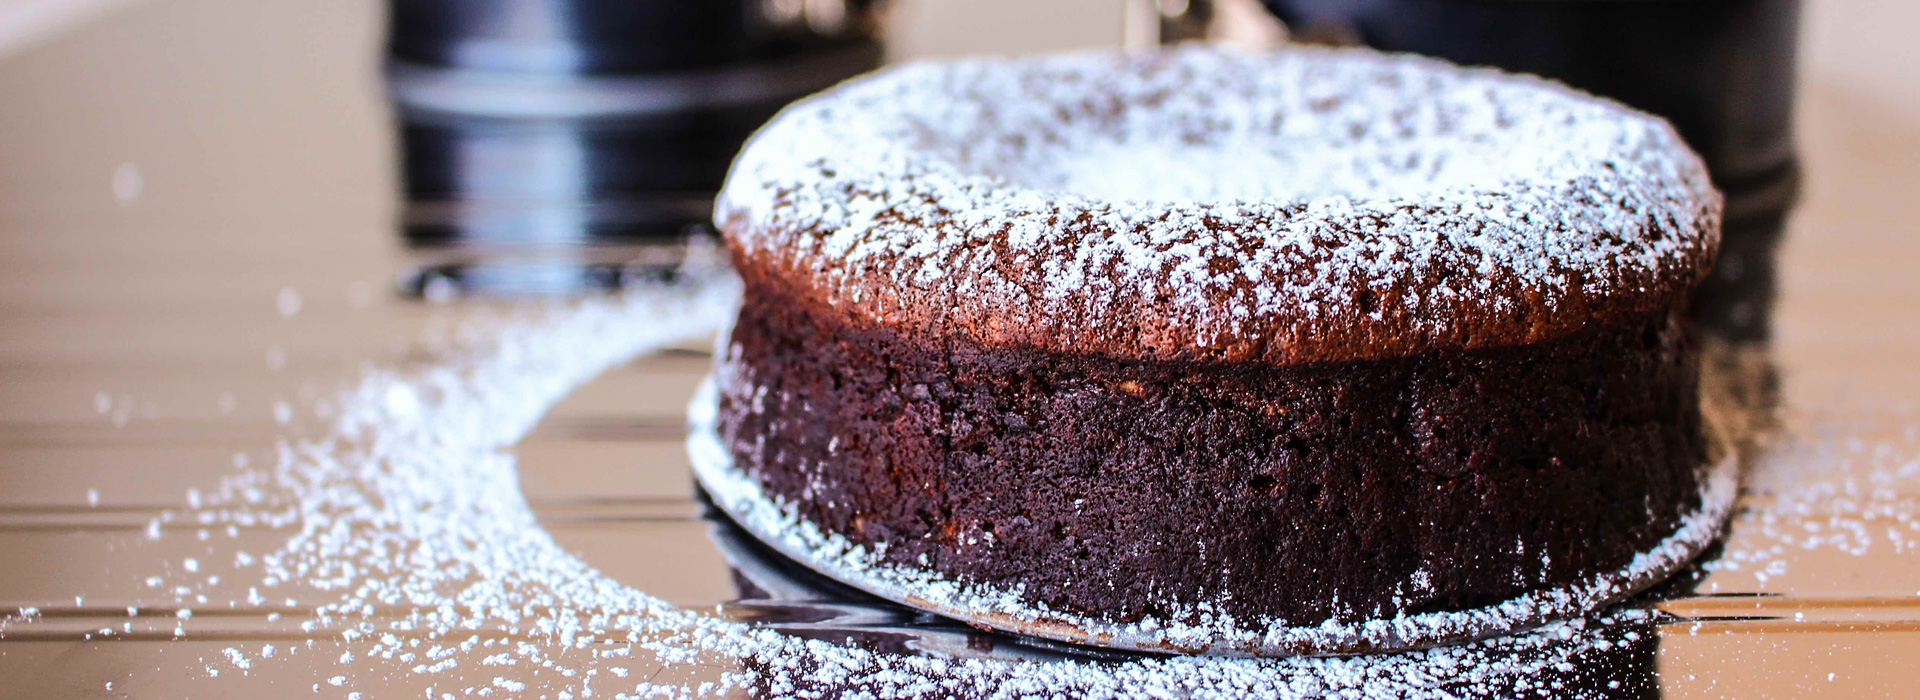 <p>This rich cake leverages a classic dessert pairing: chocolate and hazelnuts,. Here, prune puree deepens the chocolate's decadence.</p>